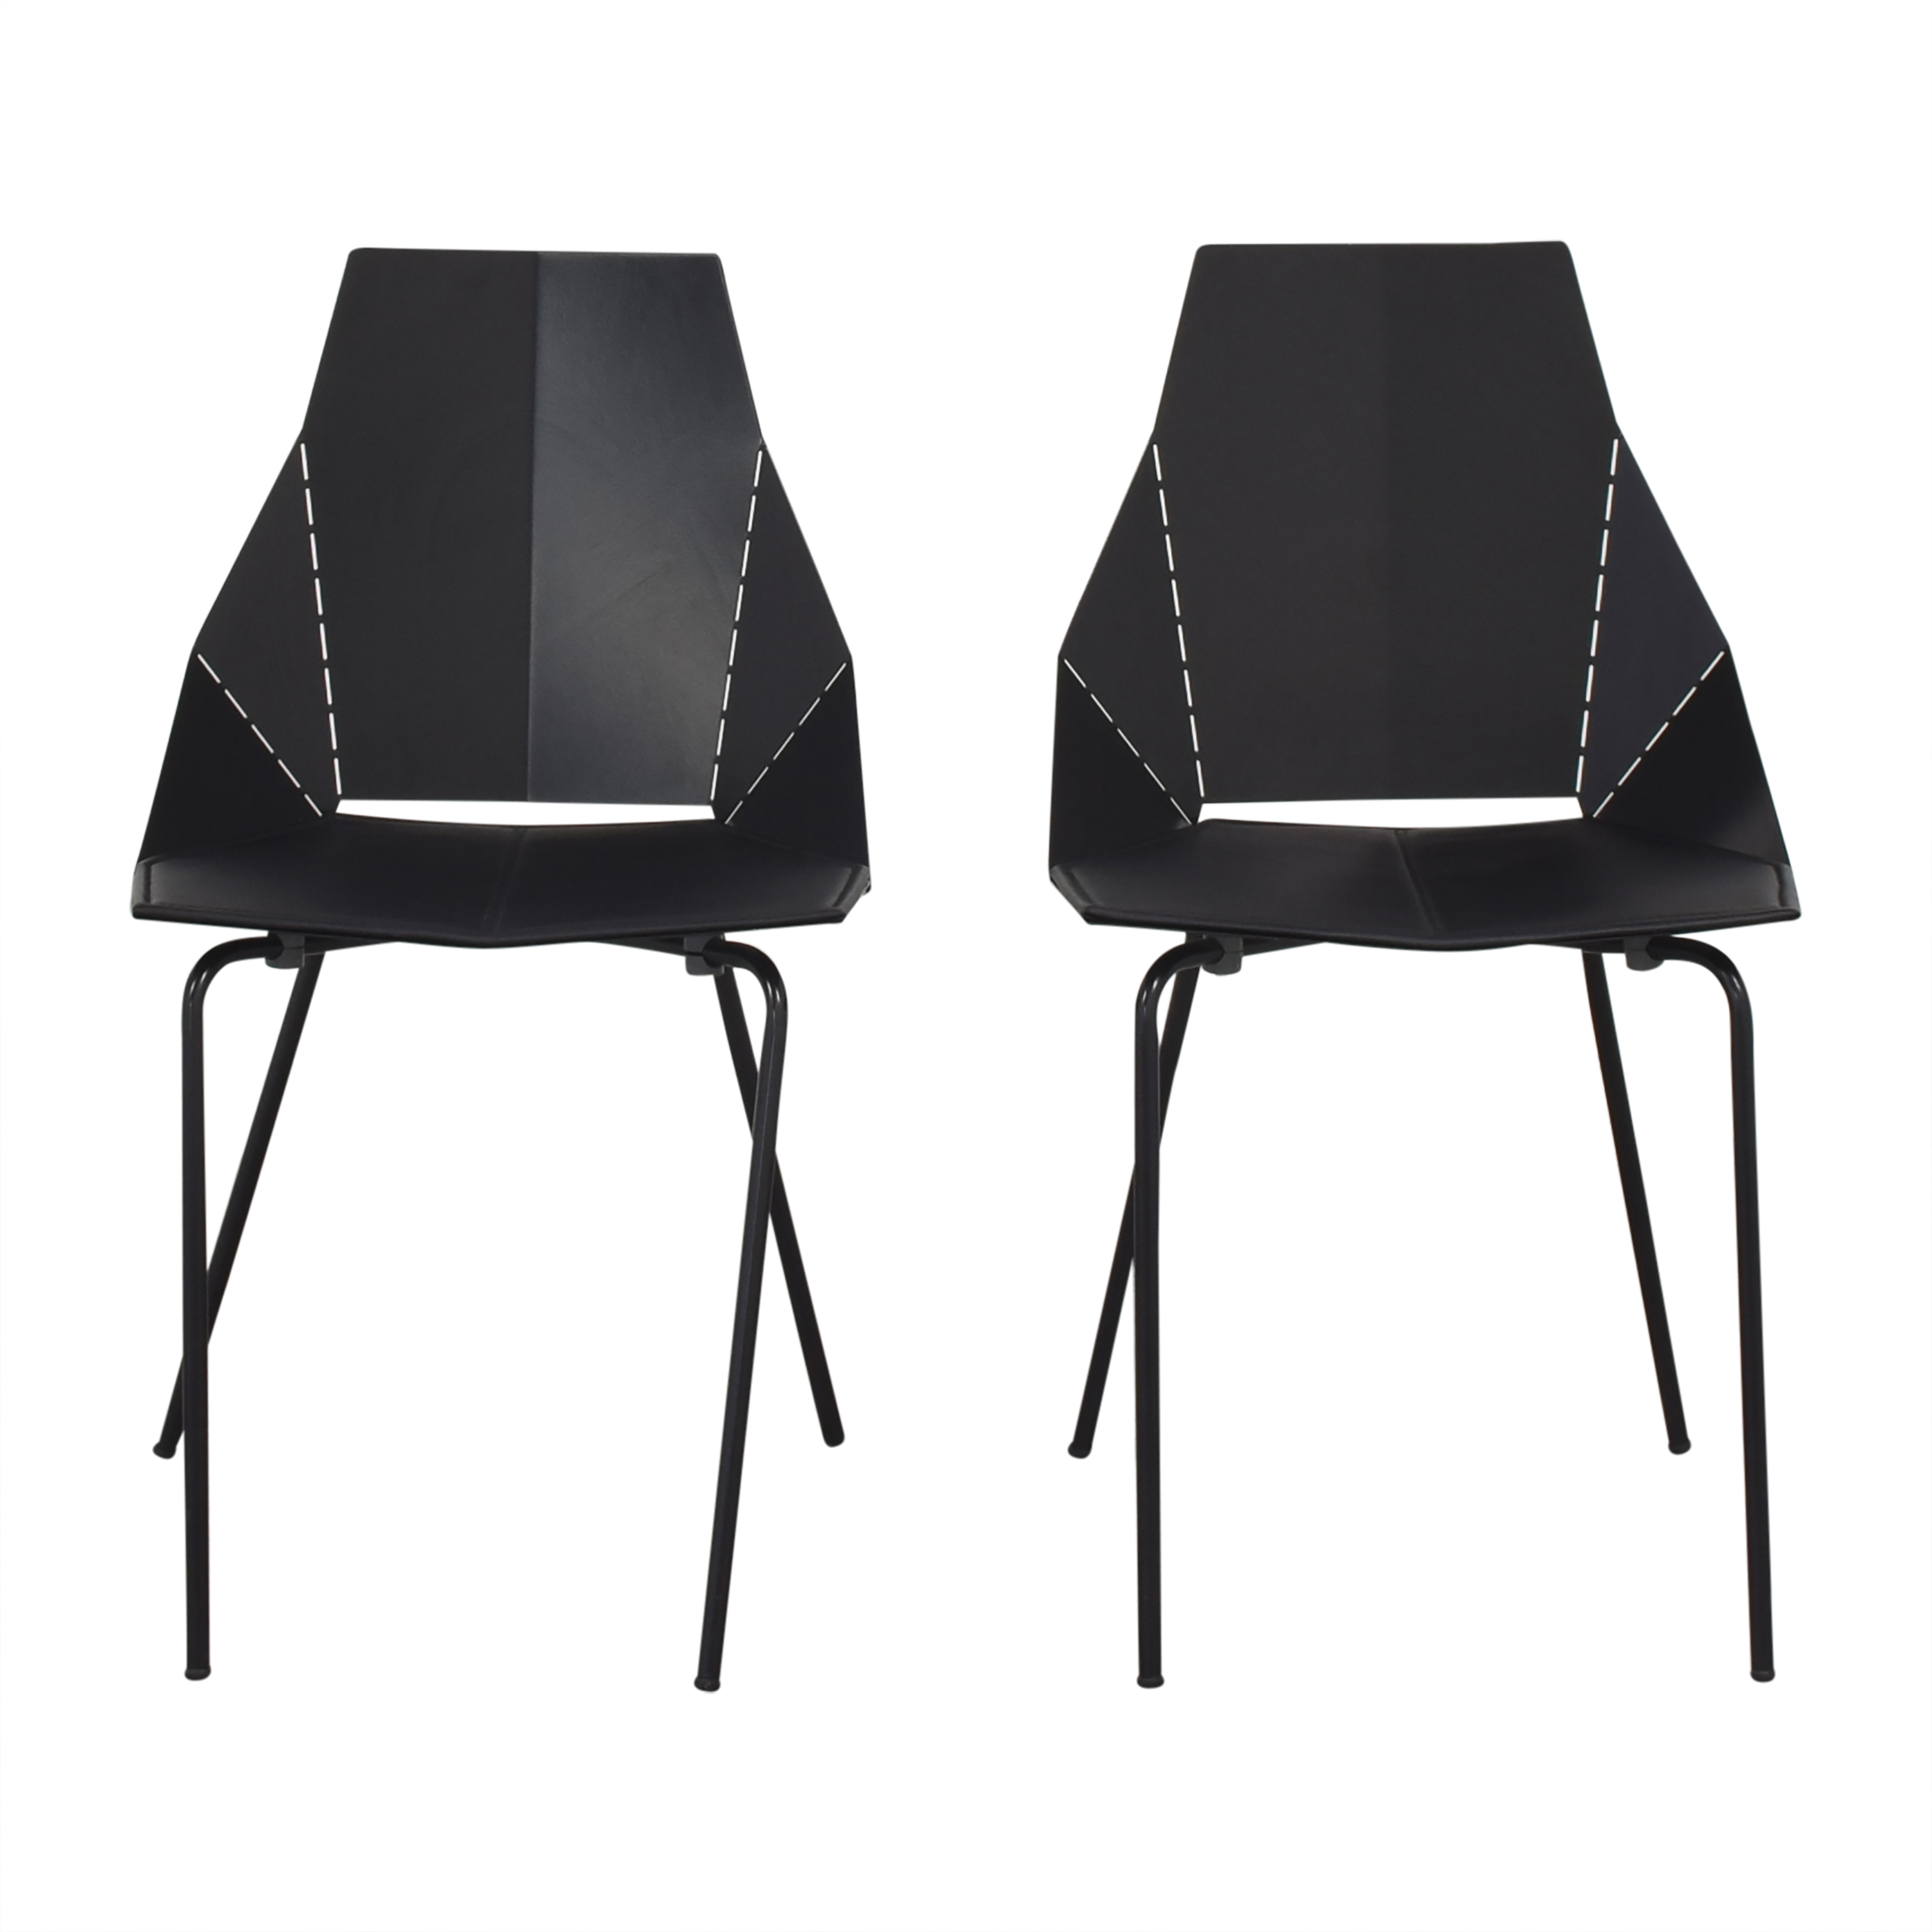 shop Blu Dot Blu Dot Real Good Chairs with Chair Pads online